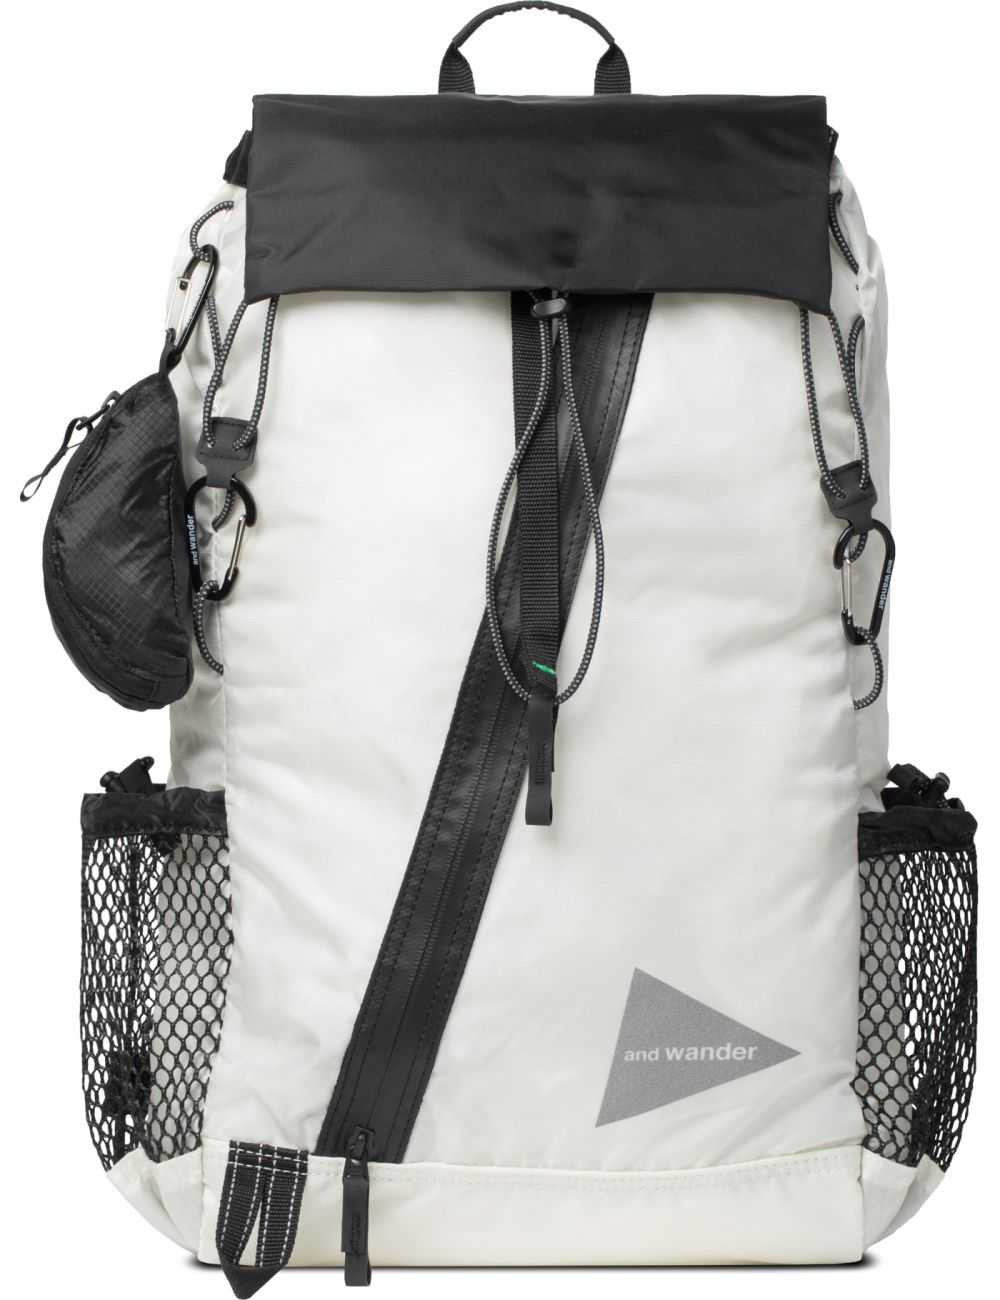 Black Mesh Backpack And Wander 7lMEMOqbt